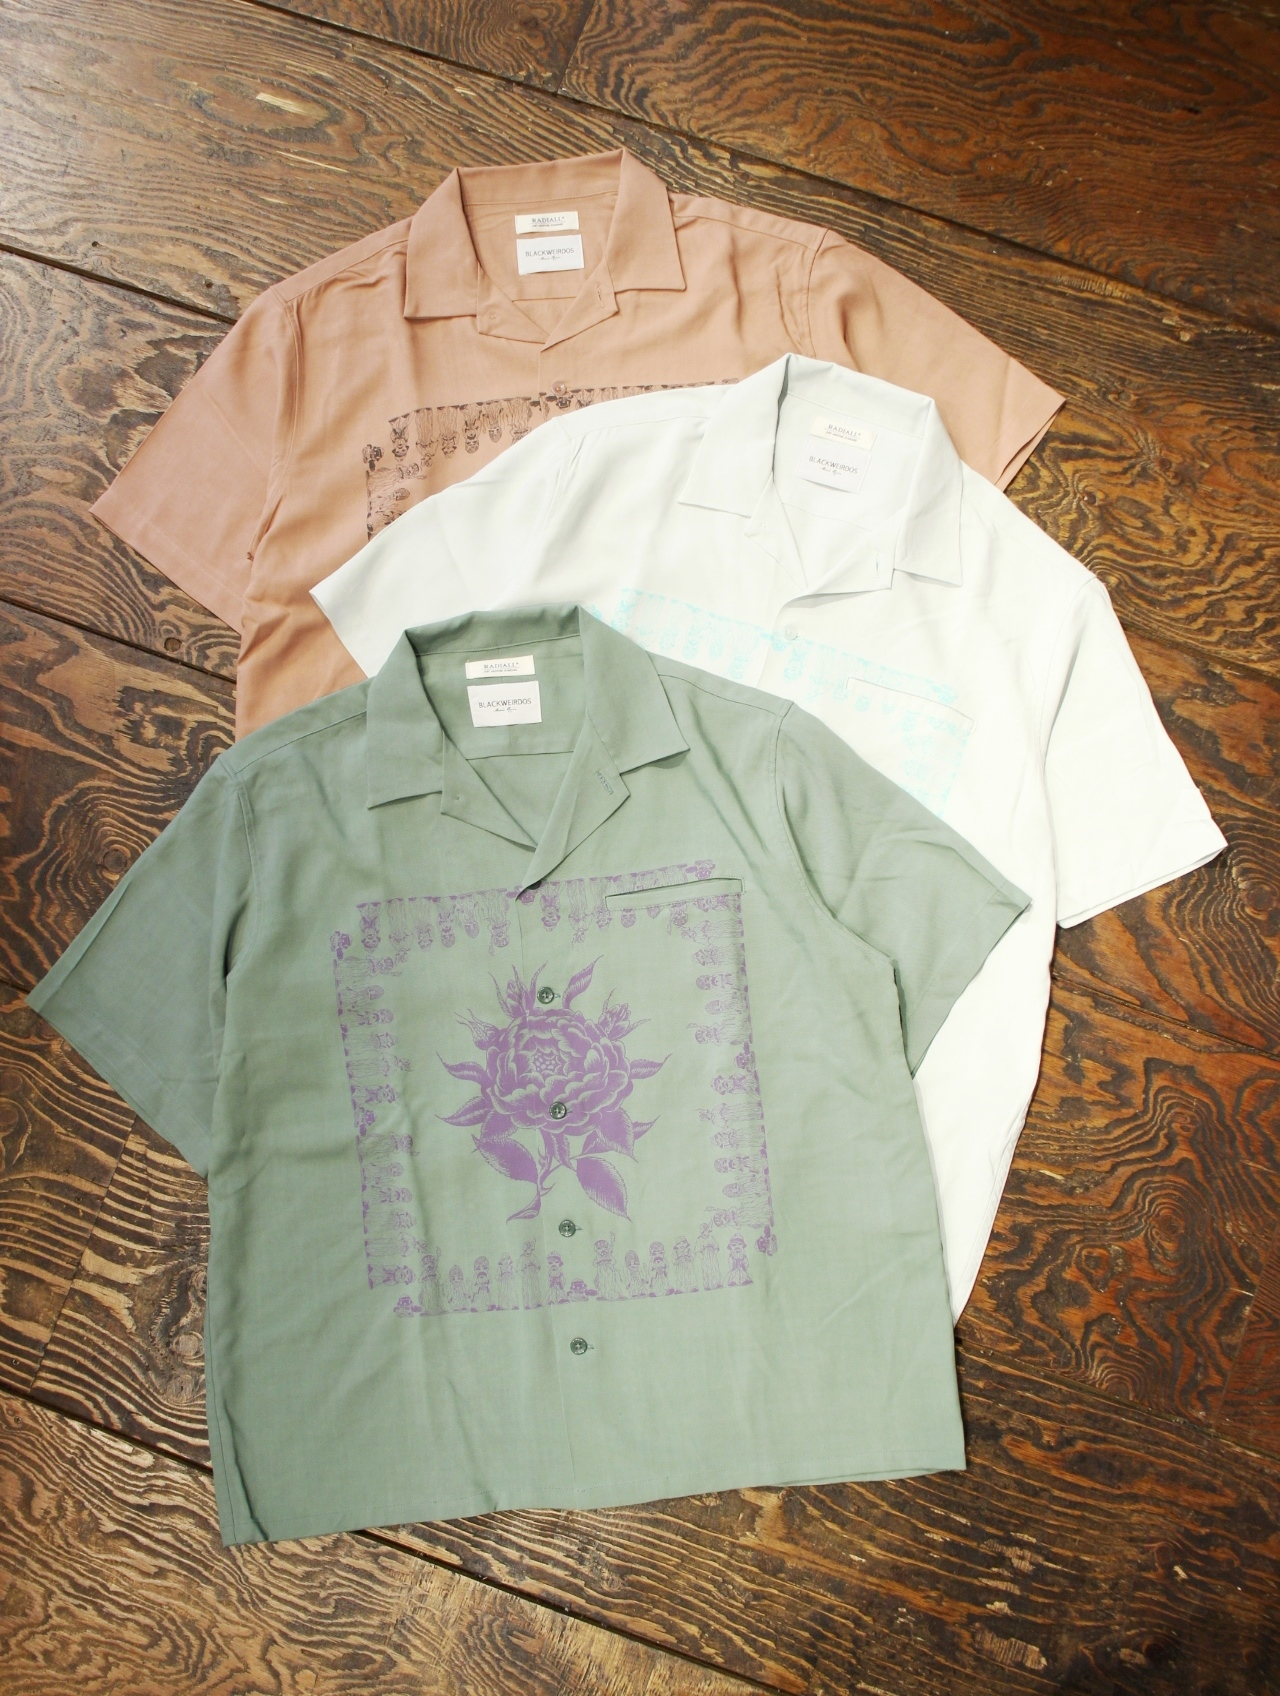 RADIALL 「CHICANO ROSE - OPEN COLLARED SHIRT S/S」  オープンカラーレーヨンシャツ